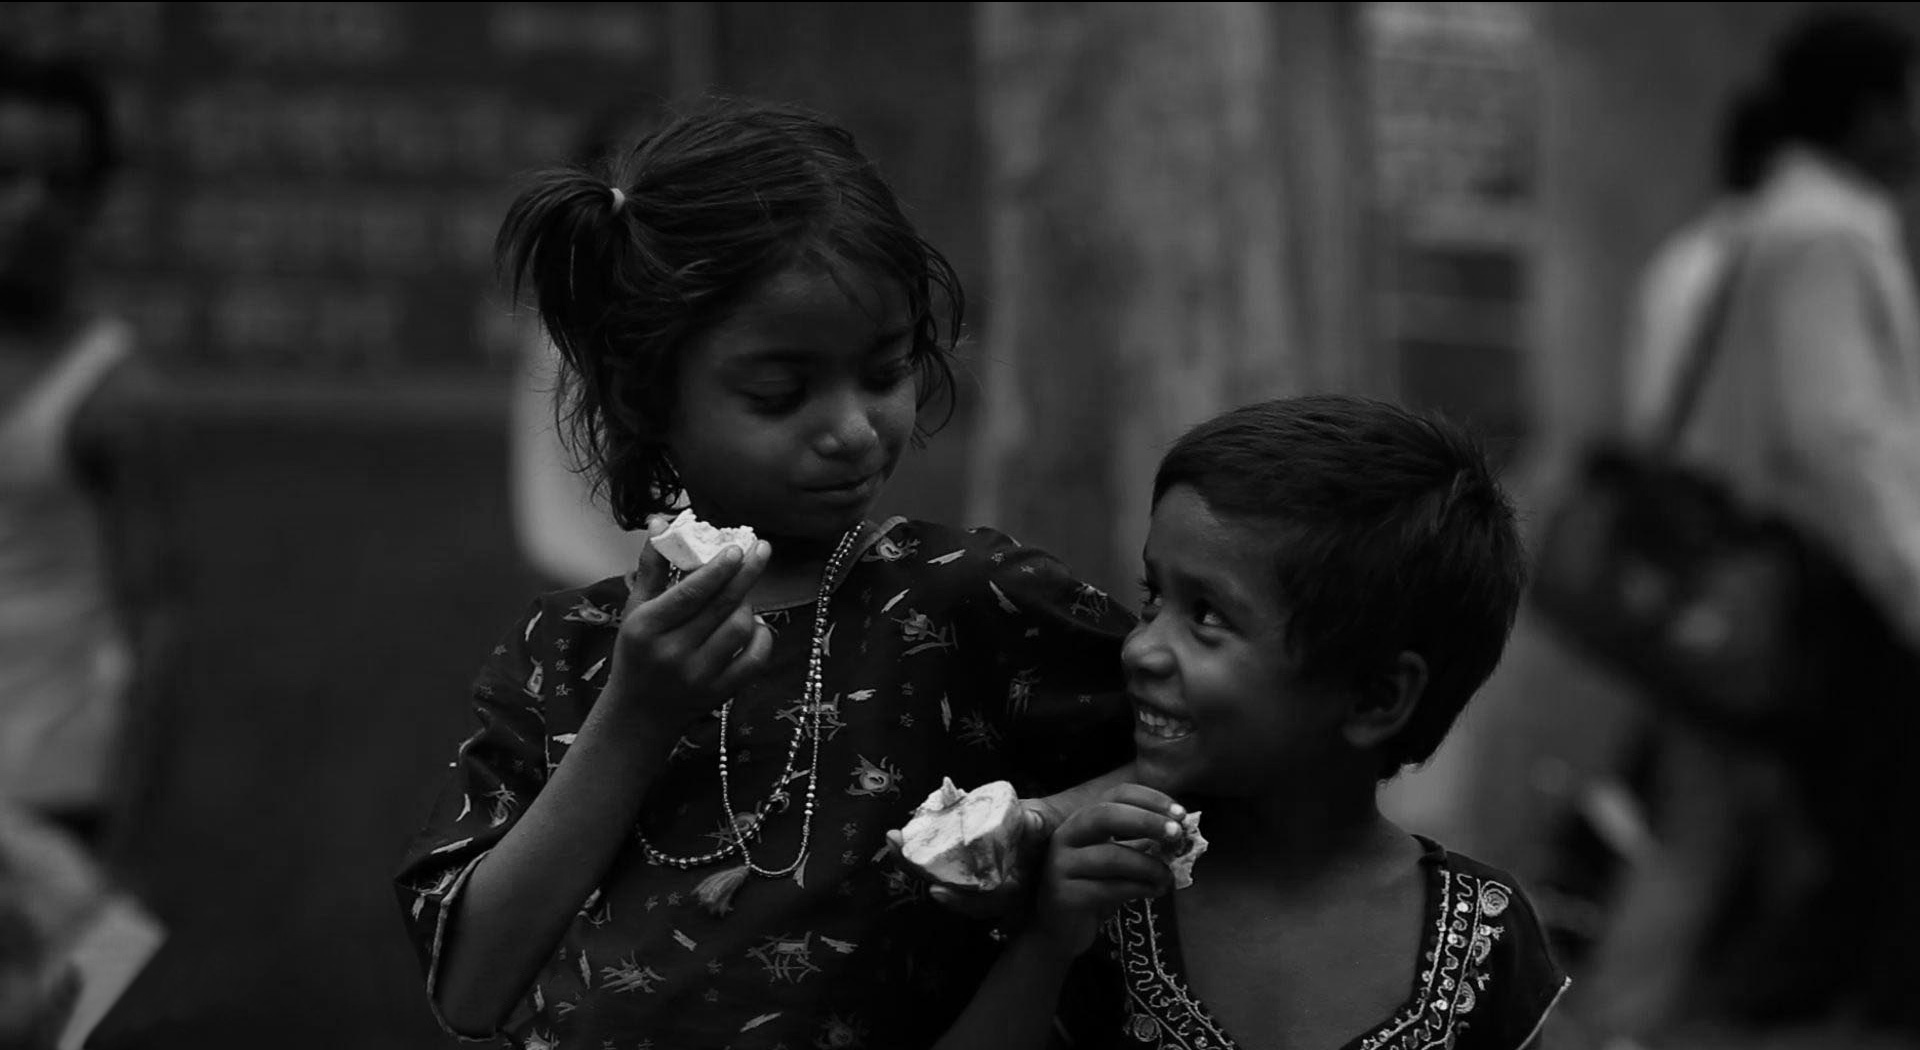 children image-two girl eat something